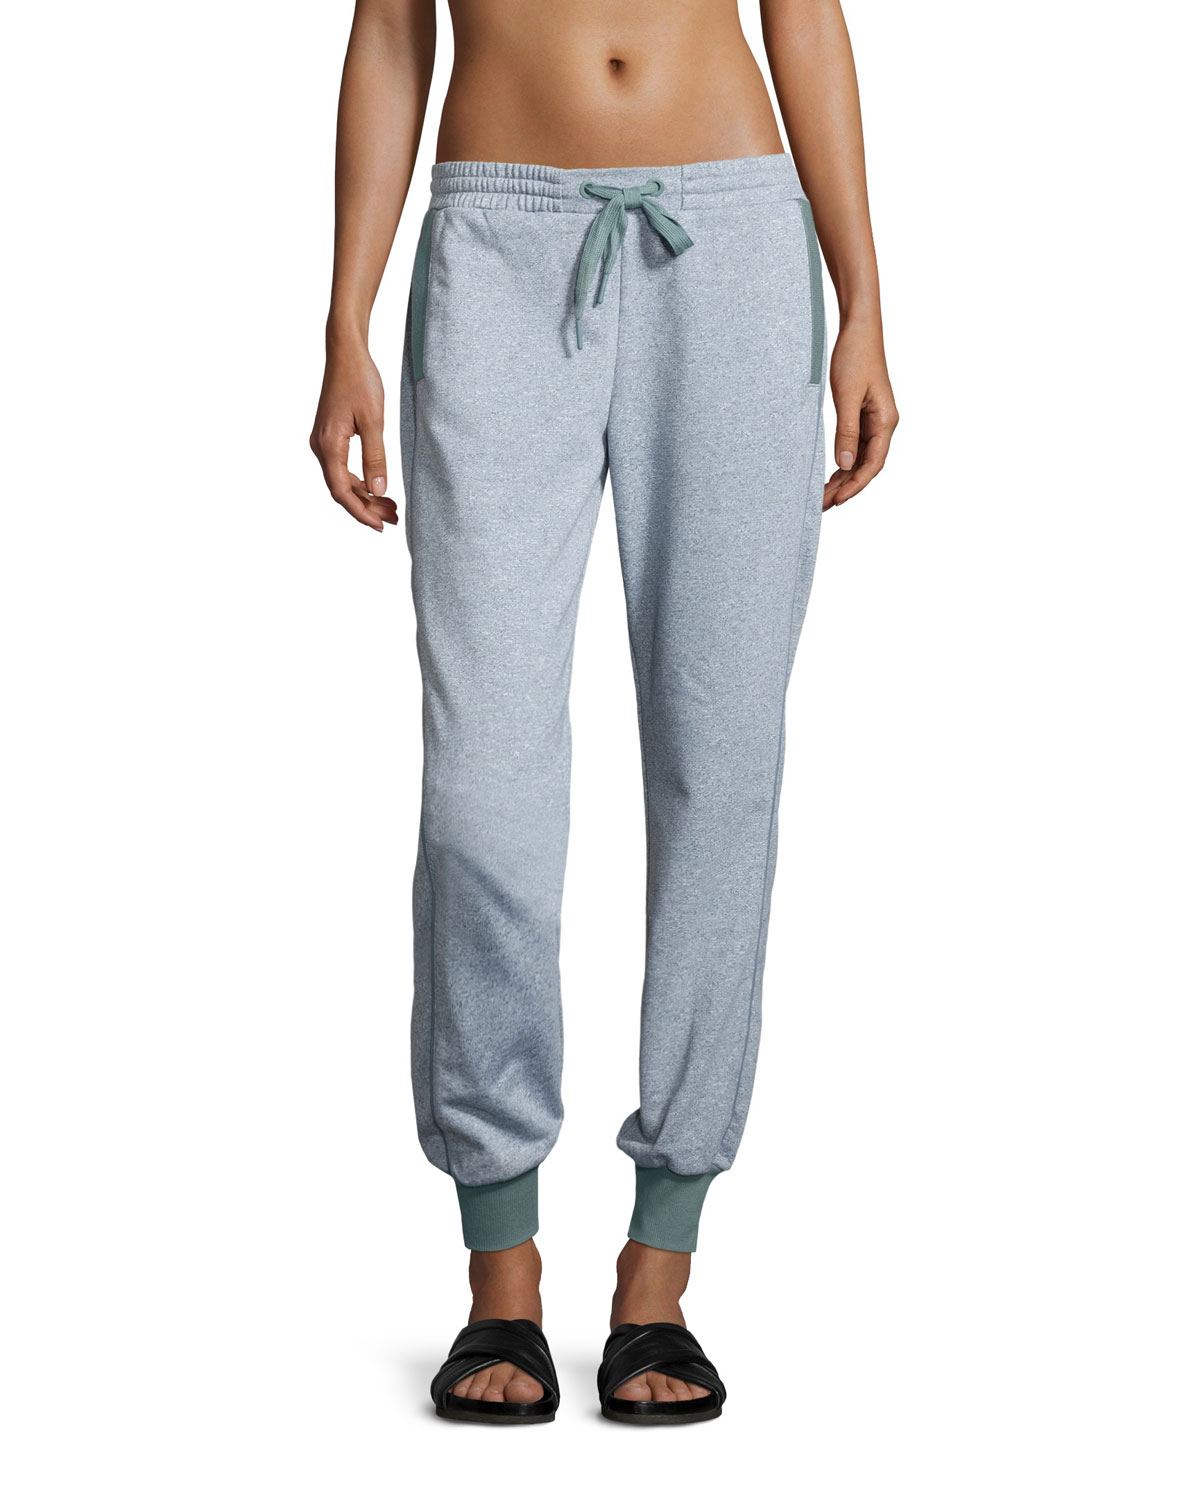 851e1a7b50a3 adidas by Stella McCartney Essentials Drawstring Sweatpants